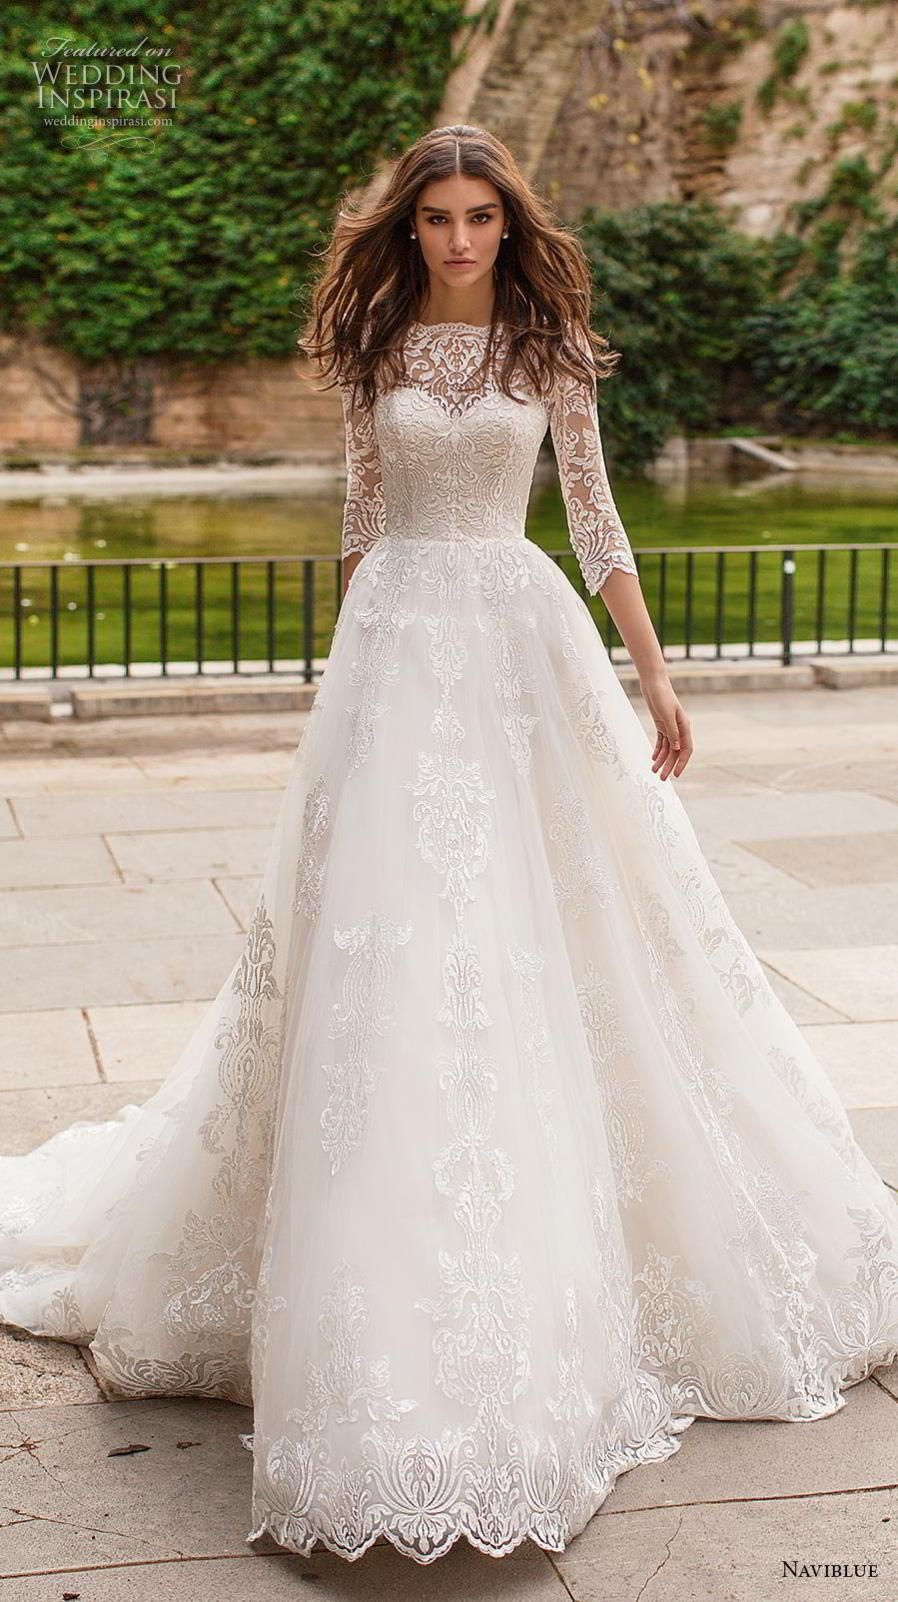 478b27c635 naviblue 2019 bridal three quarter sleeves illusion bateau sweetheart  neckline full embellishment elegant a line wedding dress chapel train (17)  mv ...